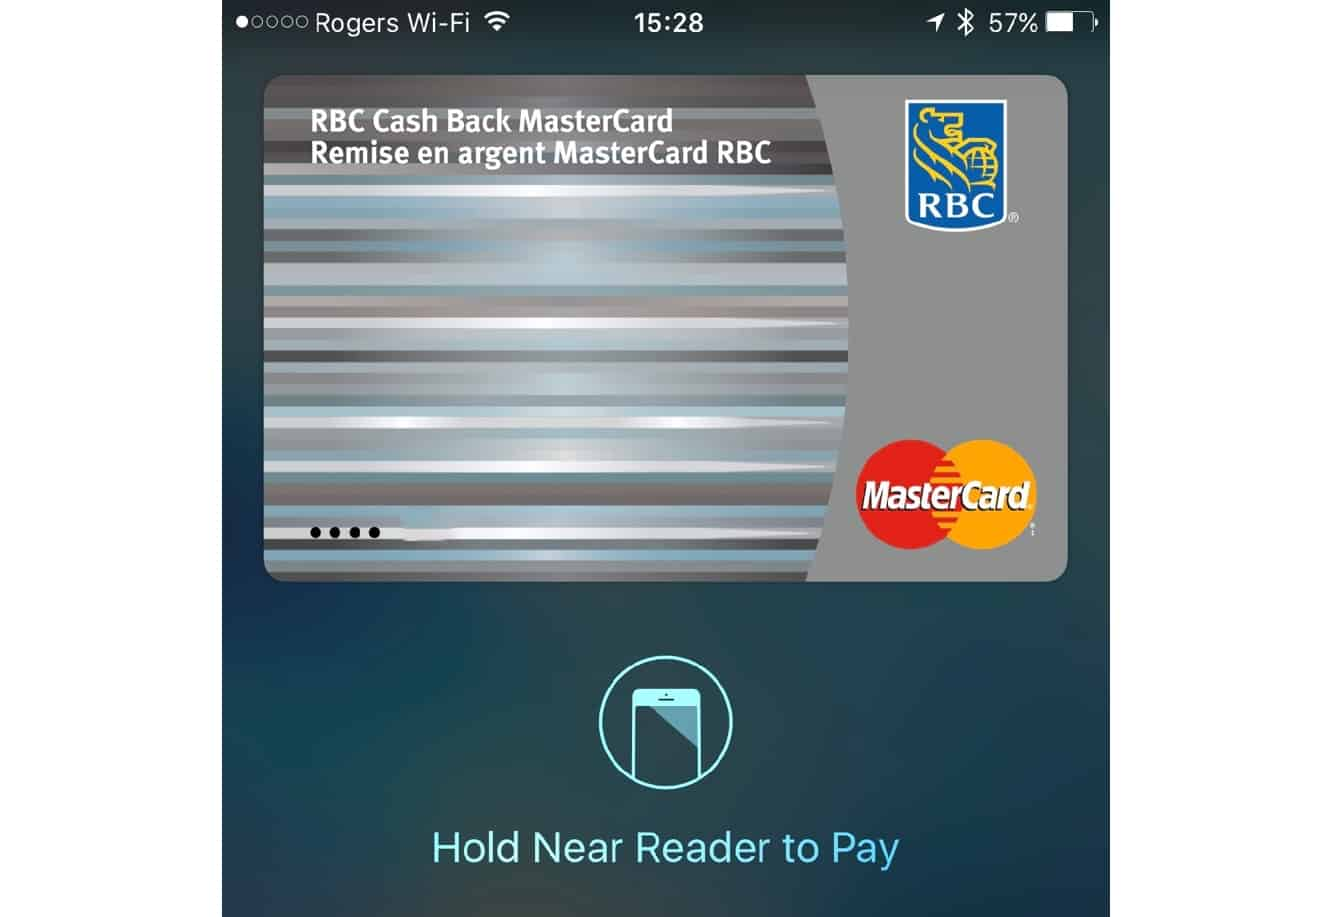 Speeding up Apple Pay at checkout